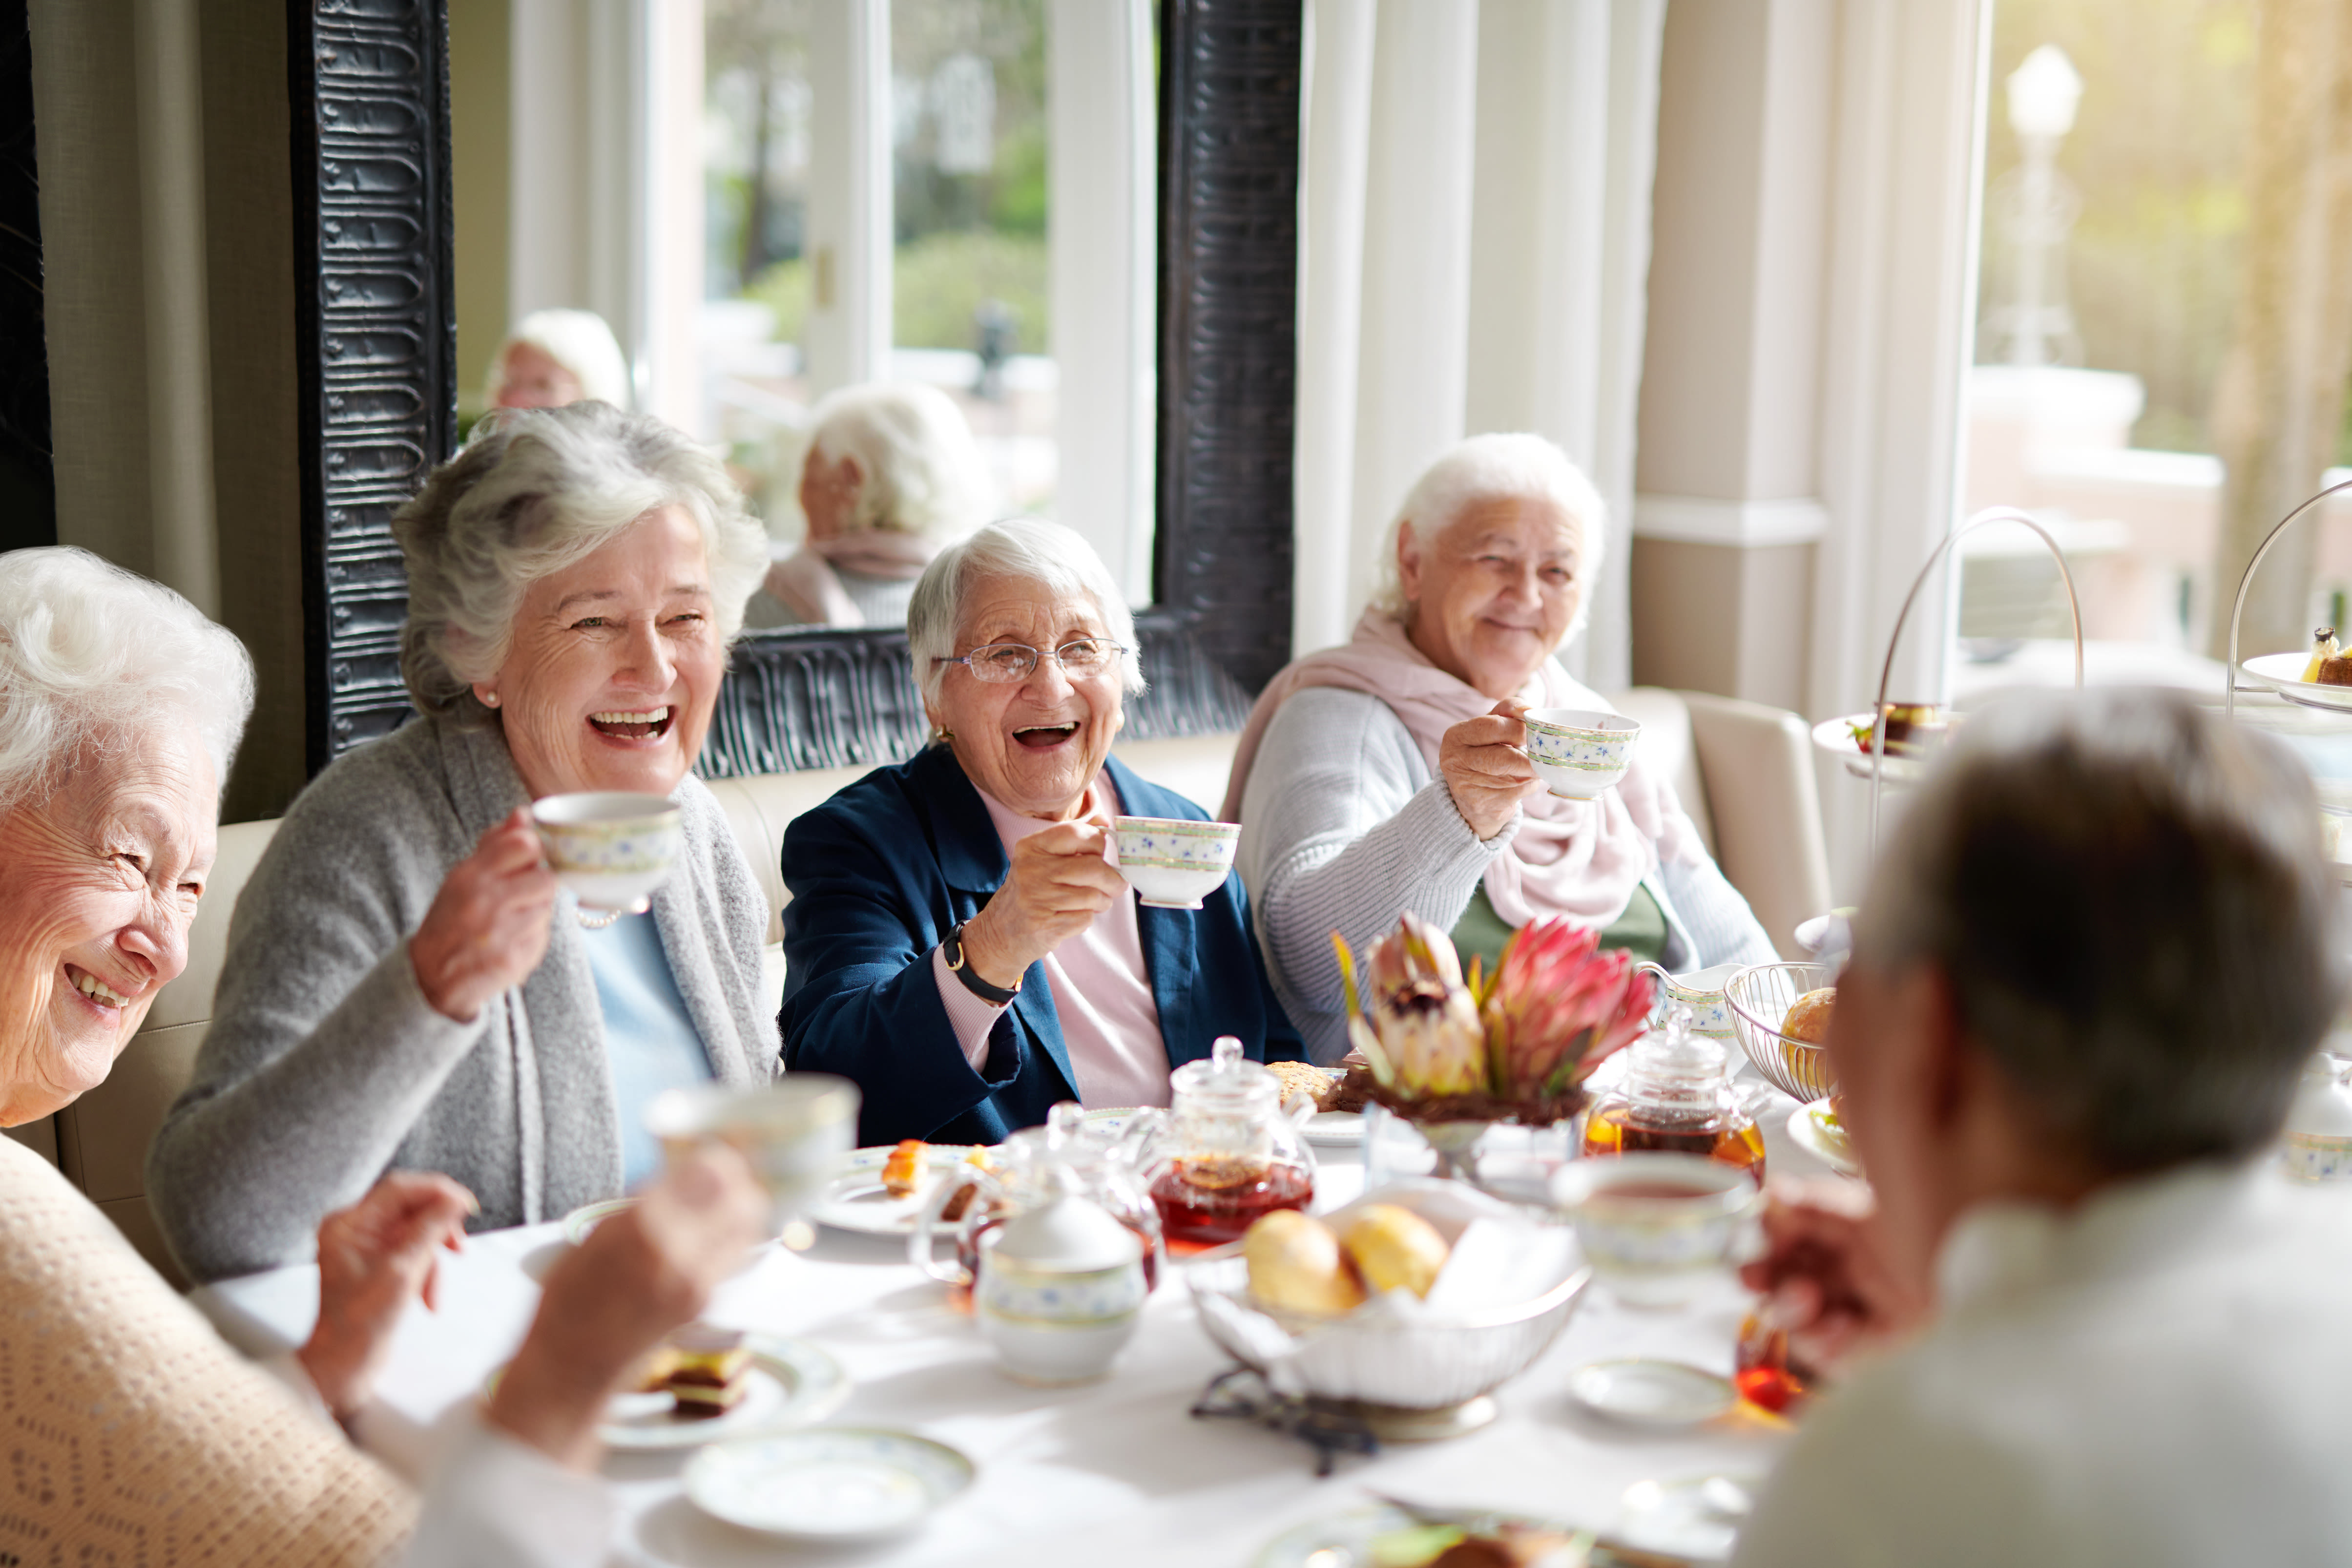 Residents having tea together at Harmony at Avon in Avon, Indiana